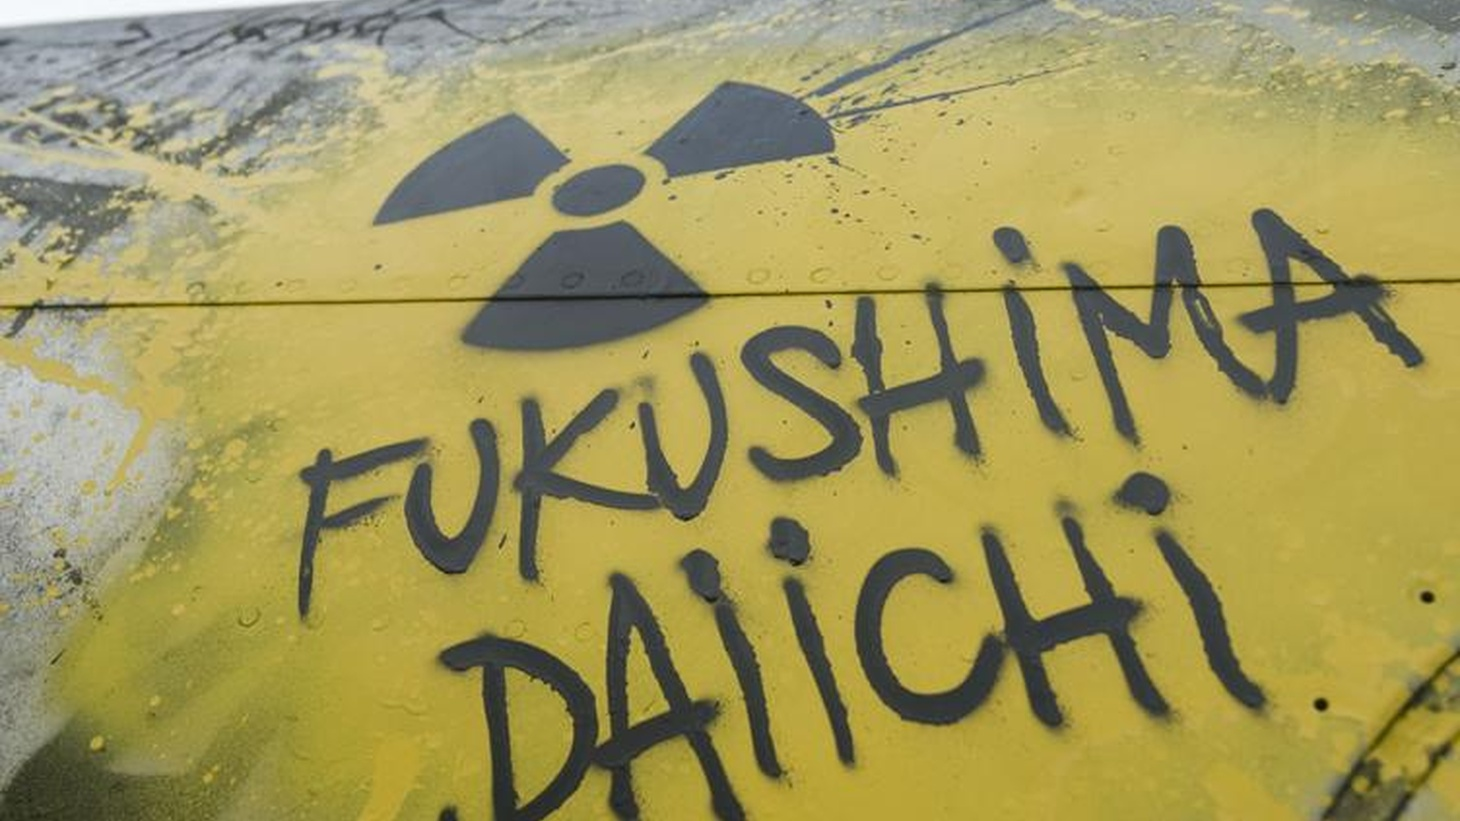 Today: looking back at the Fukushima disaster of 2011, the tale of a Rockefeller impostor, remembering journalist Joe McGinniss, and an update from SXSW.